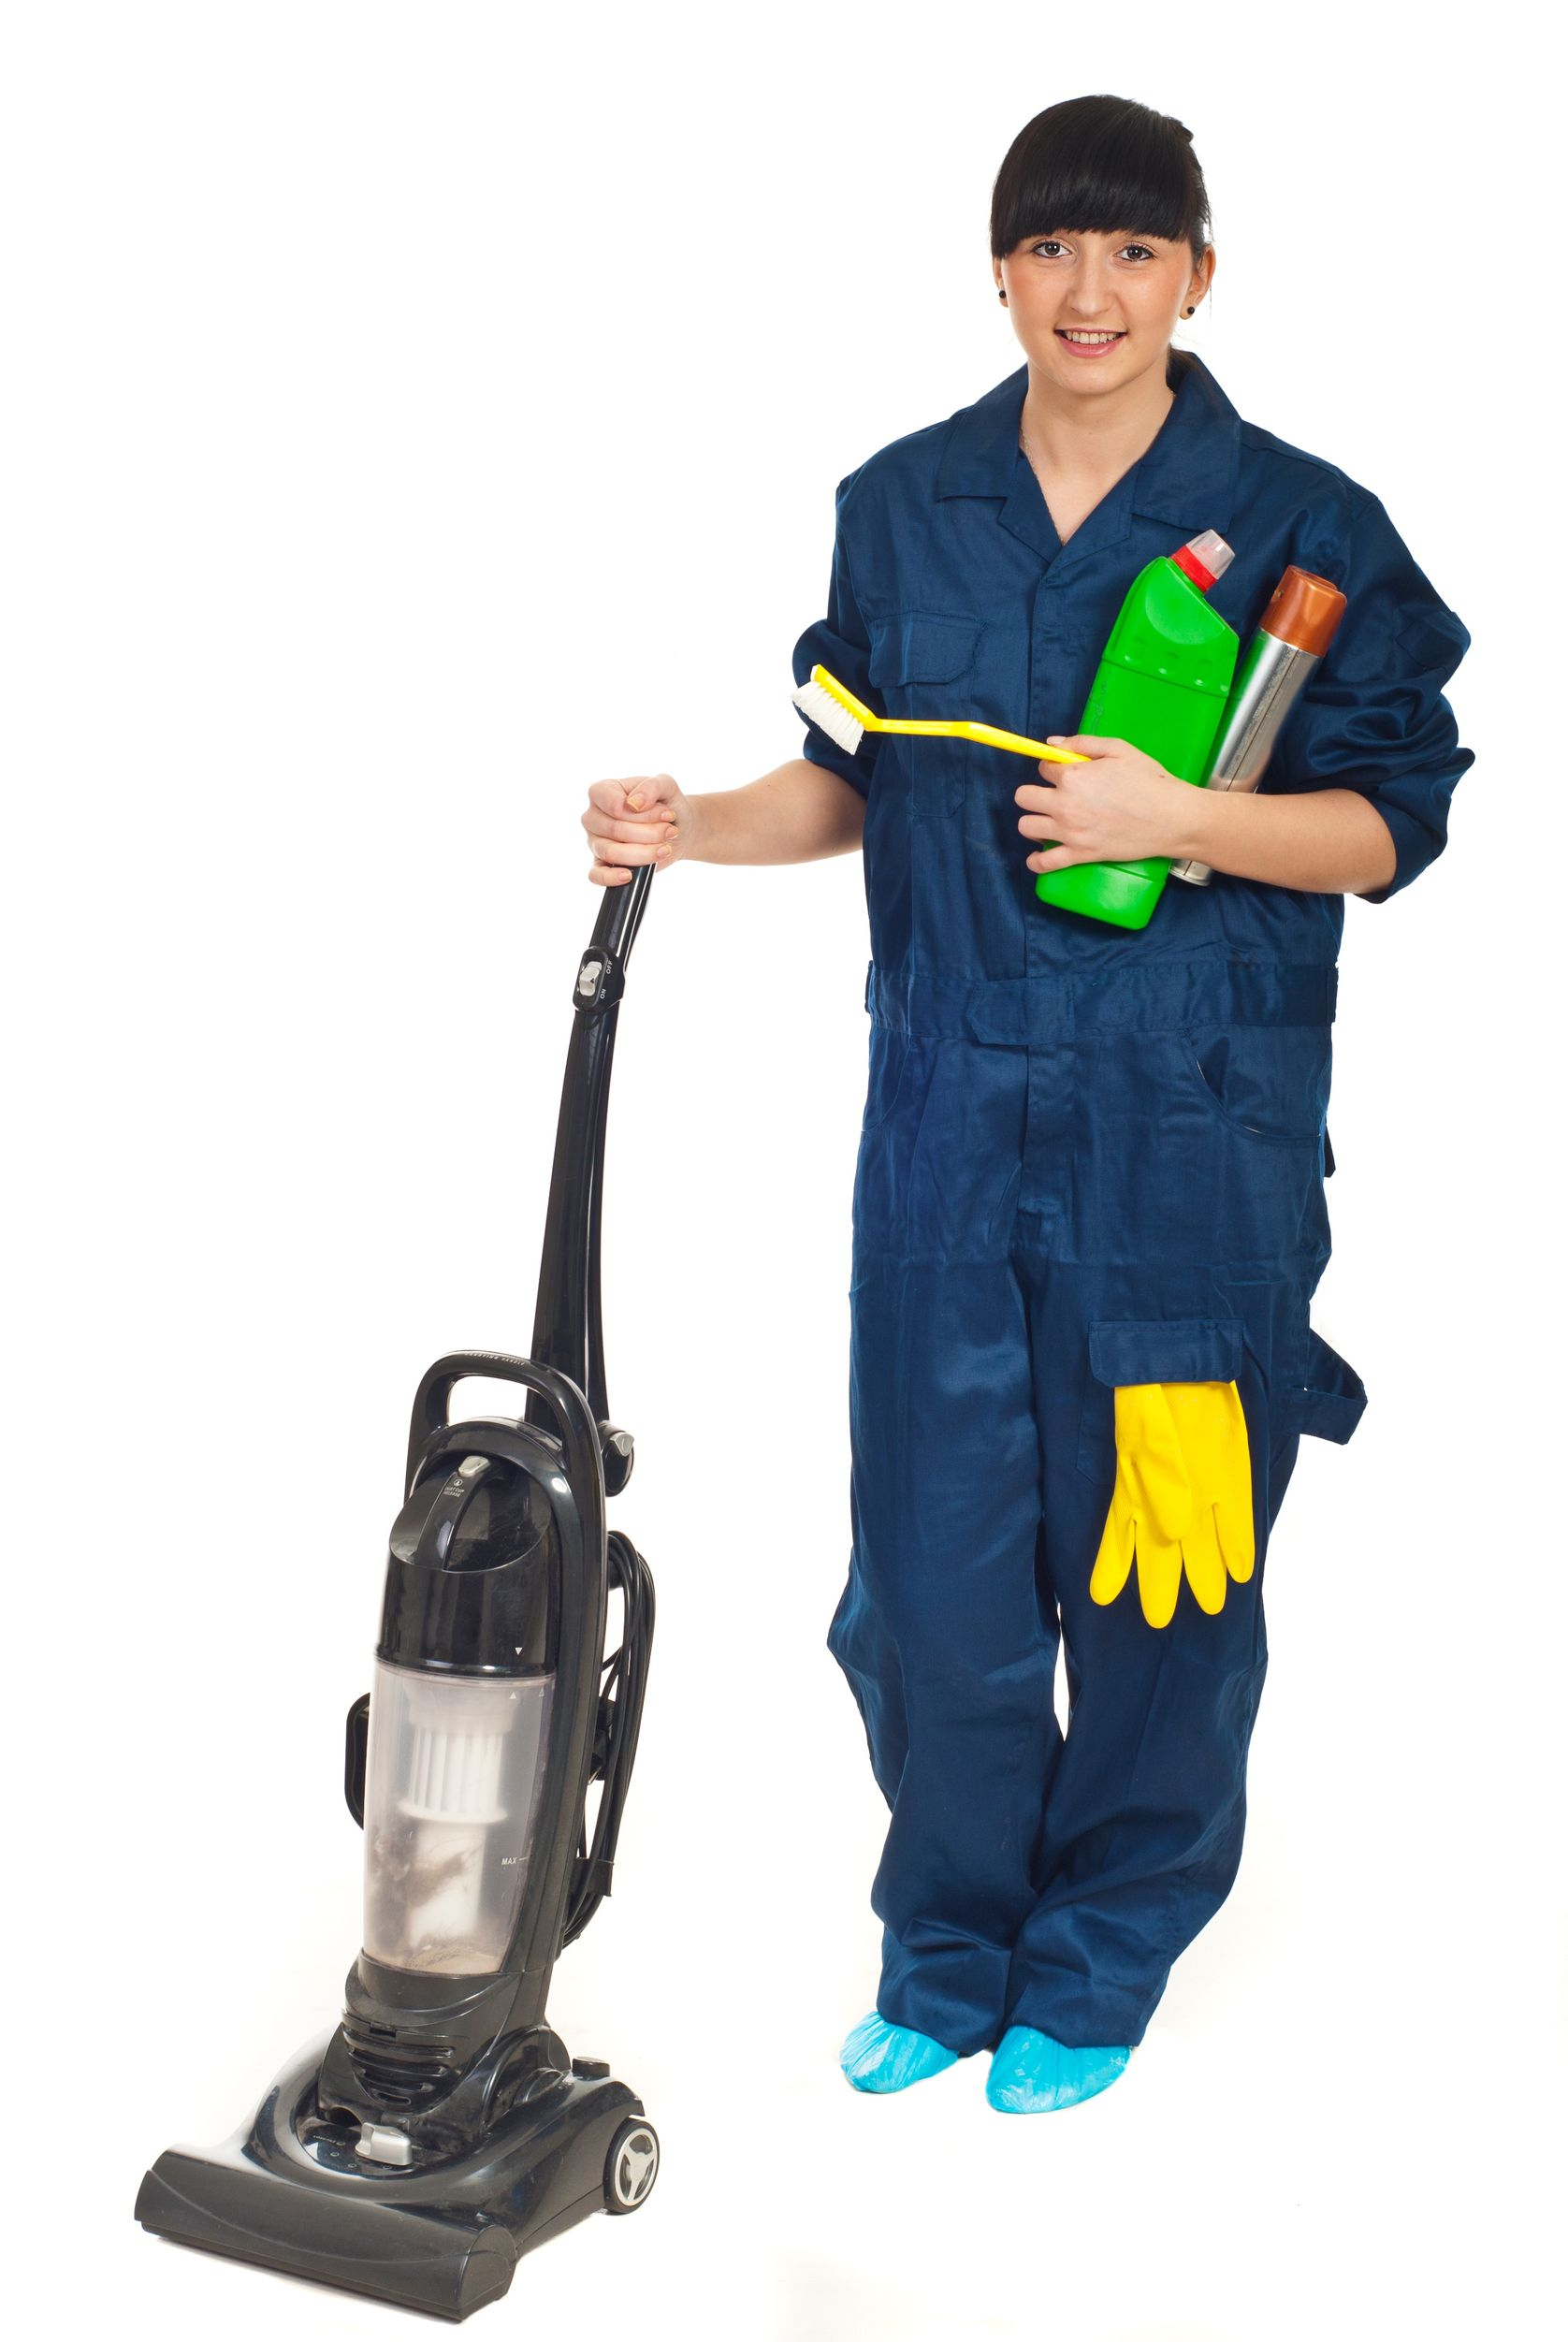 Hiring Housekeeping Services for Your Home